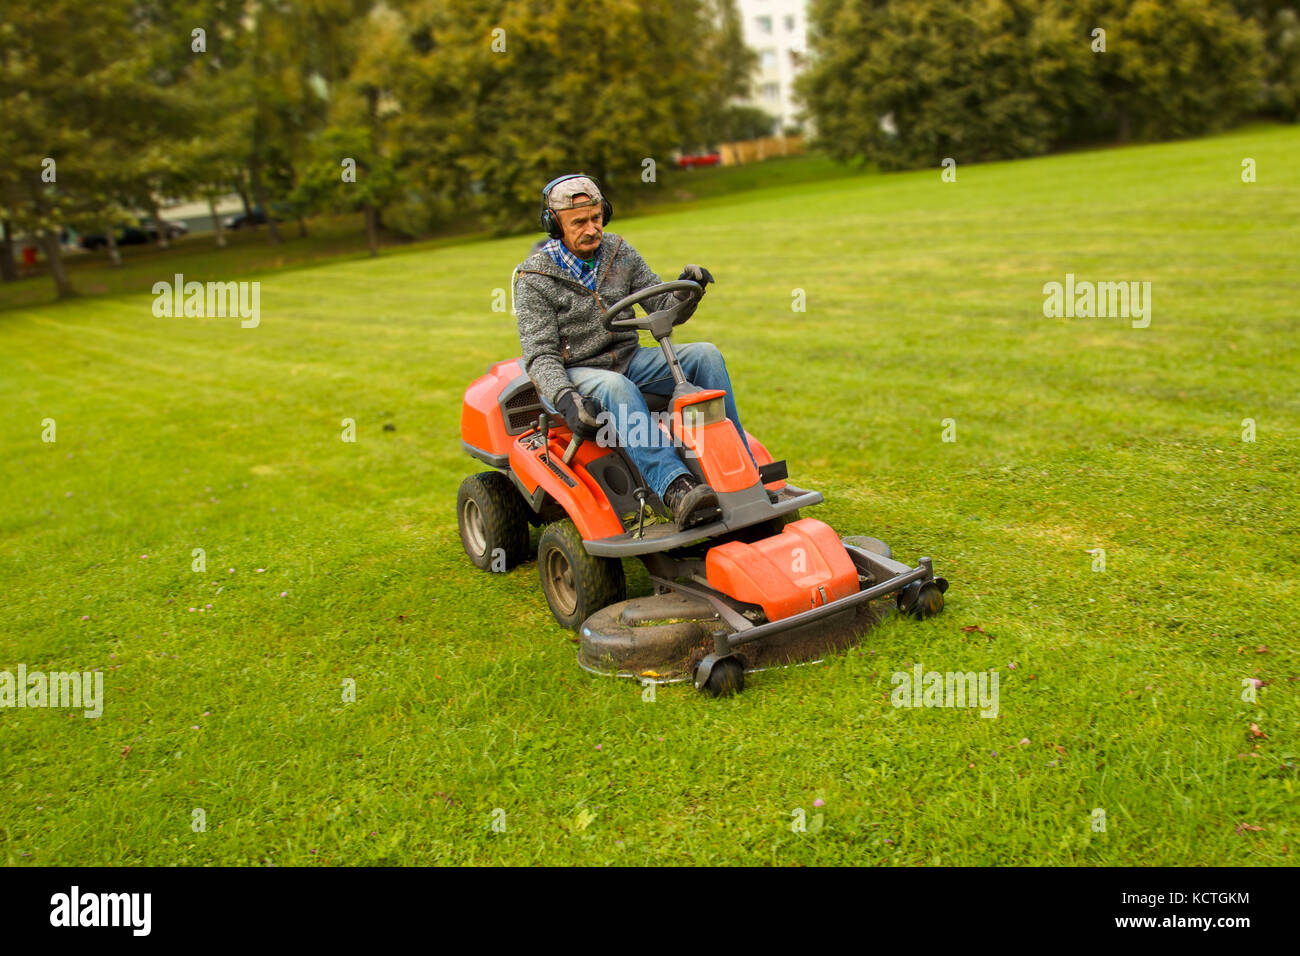 Man Riding Lawn Mower : Mow the lawn stock photos images alamy